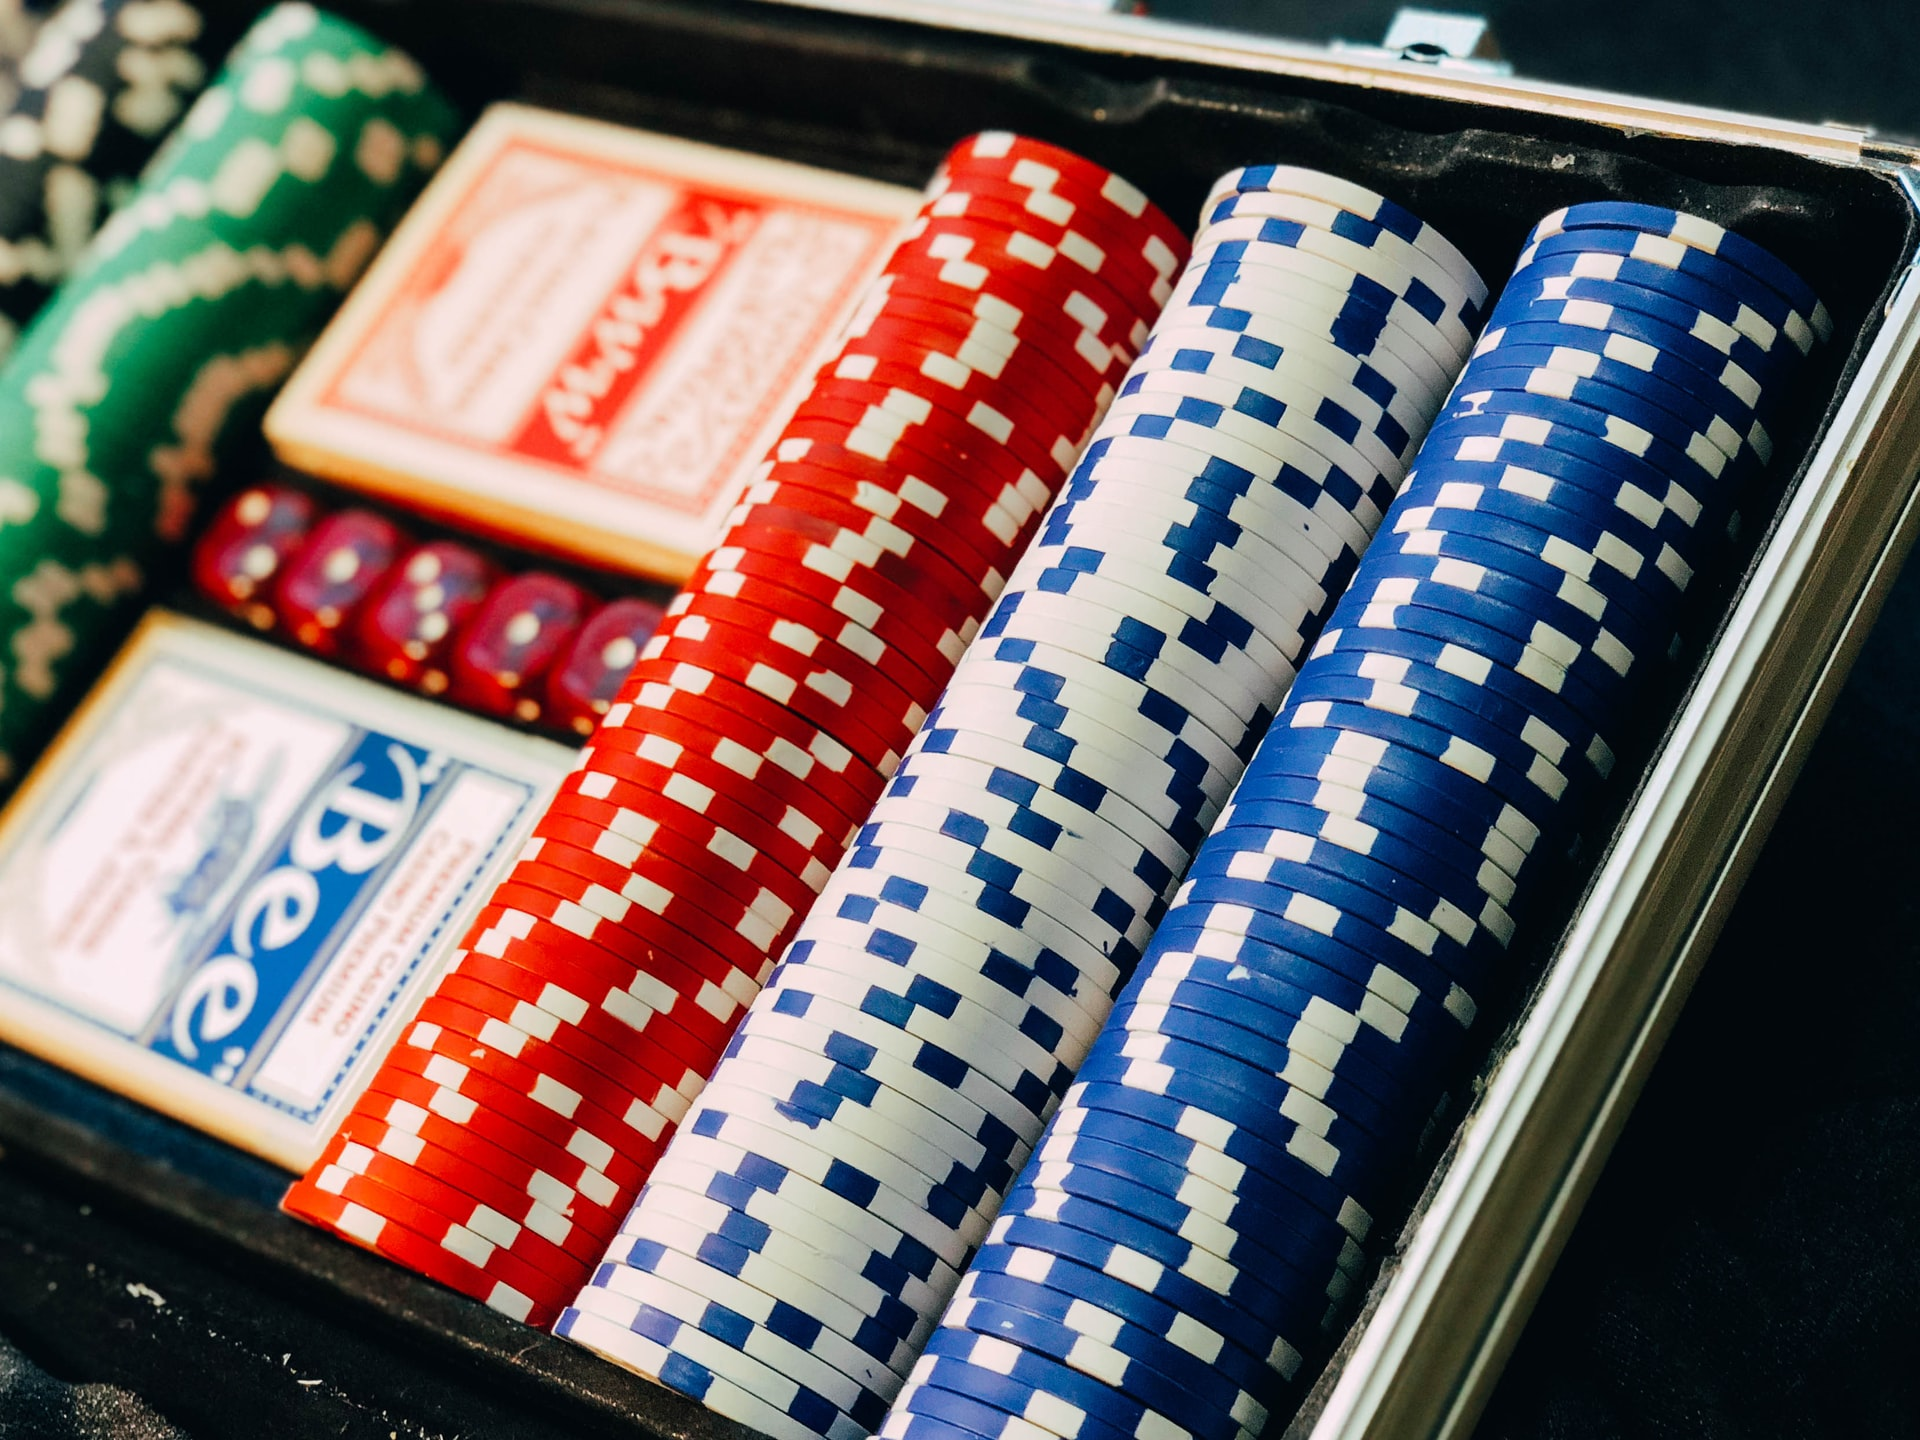 What Measures Do Online Casinos Take to Combat Money Laundering?